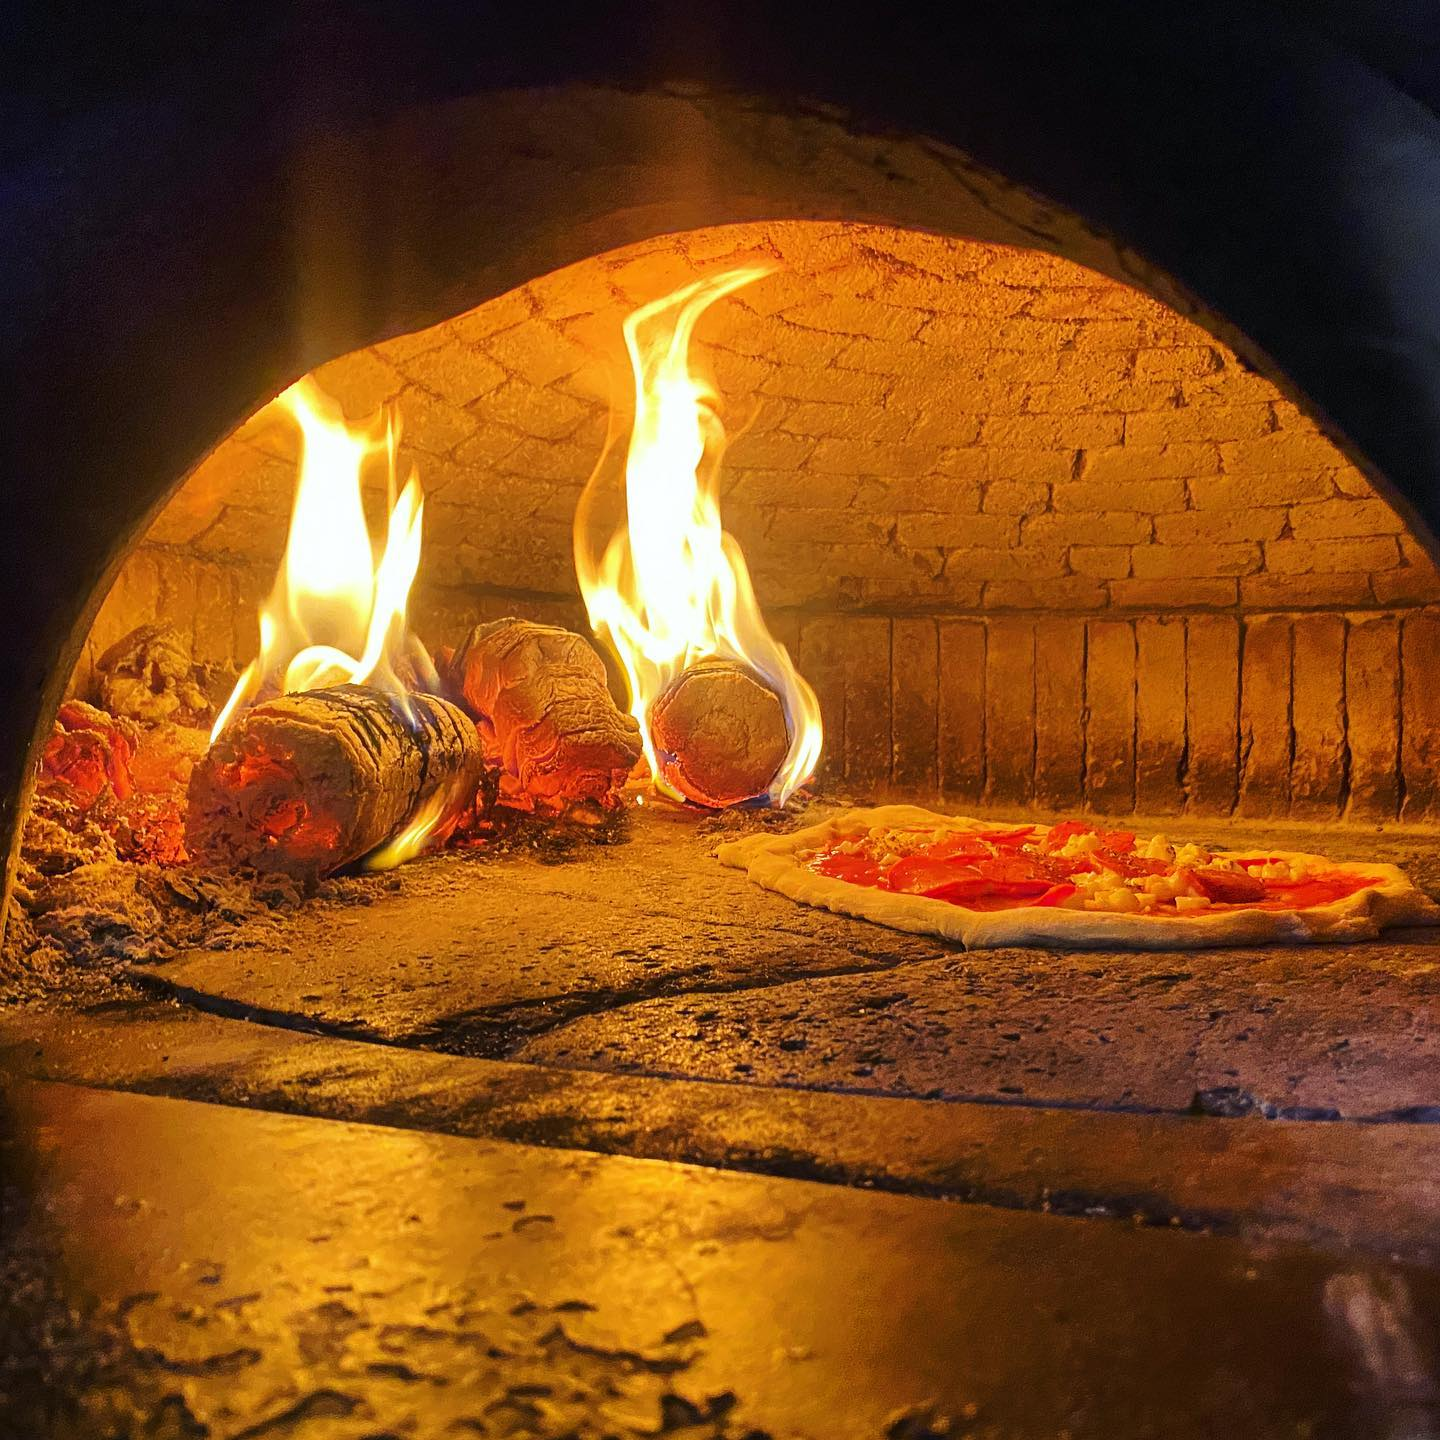 Pizzas are in the oven waiting for you to order them! We're on Deliveroo till 10pm! 🍕🤪 Happy Sunday! • • • • • • • • • #youwantapizzame #pizzaoven #italy🇮🇹 #woodfiredpizza #pizzalover #pizzalove #wellstreetpizza #neopolitanpizza #londonfood #pizzaislife #londonpizza #instadaily